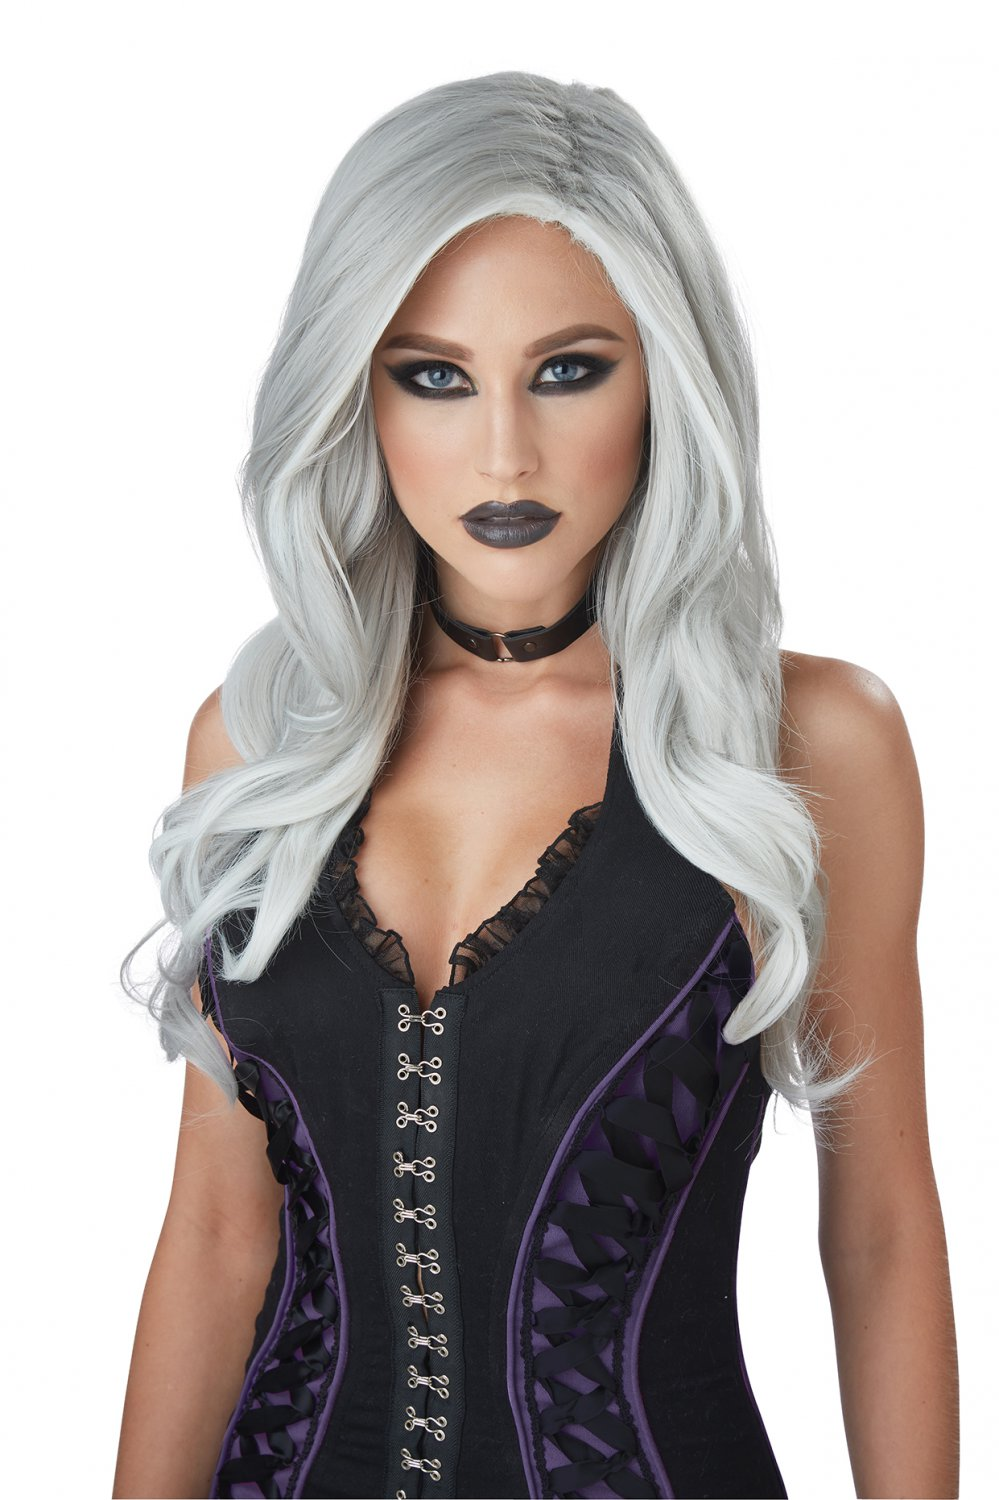 #70885 Sexy Victorian Renaissance Gothic Vampire Fatal Beauty Costume Accessory Wig